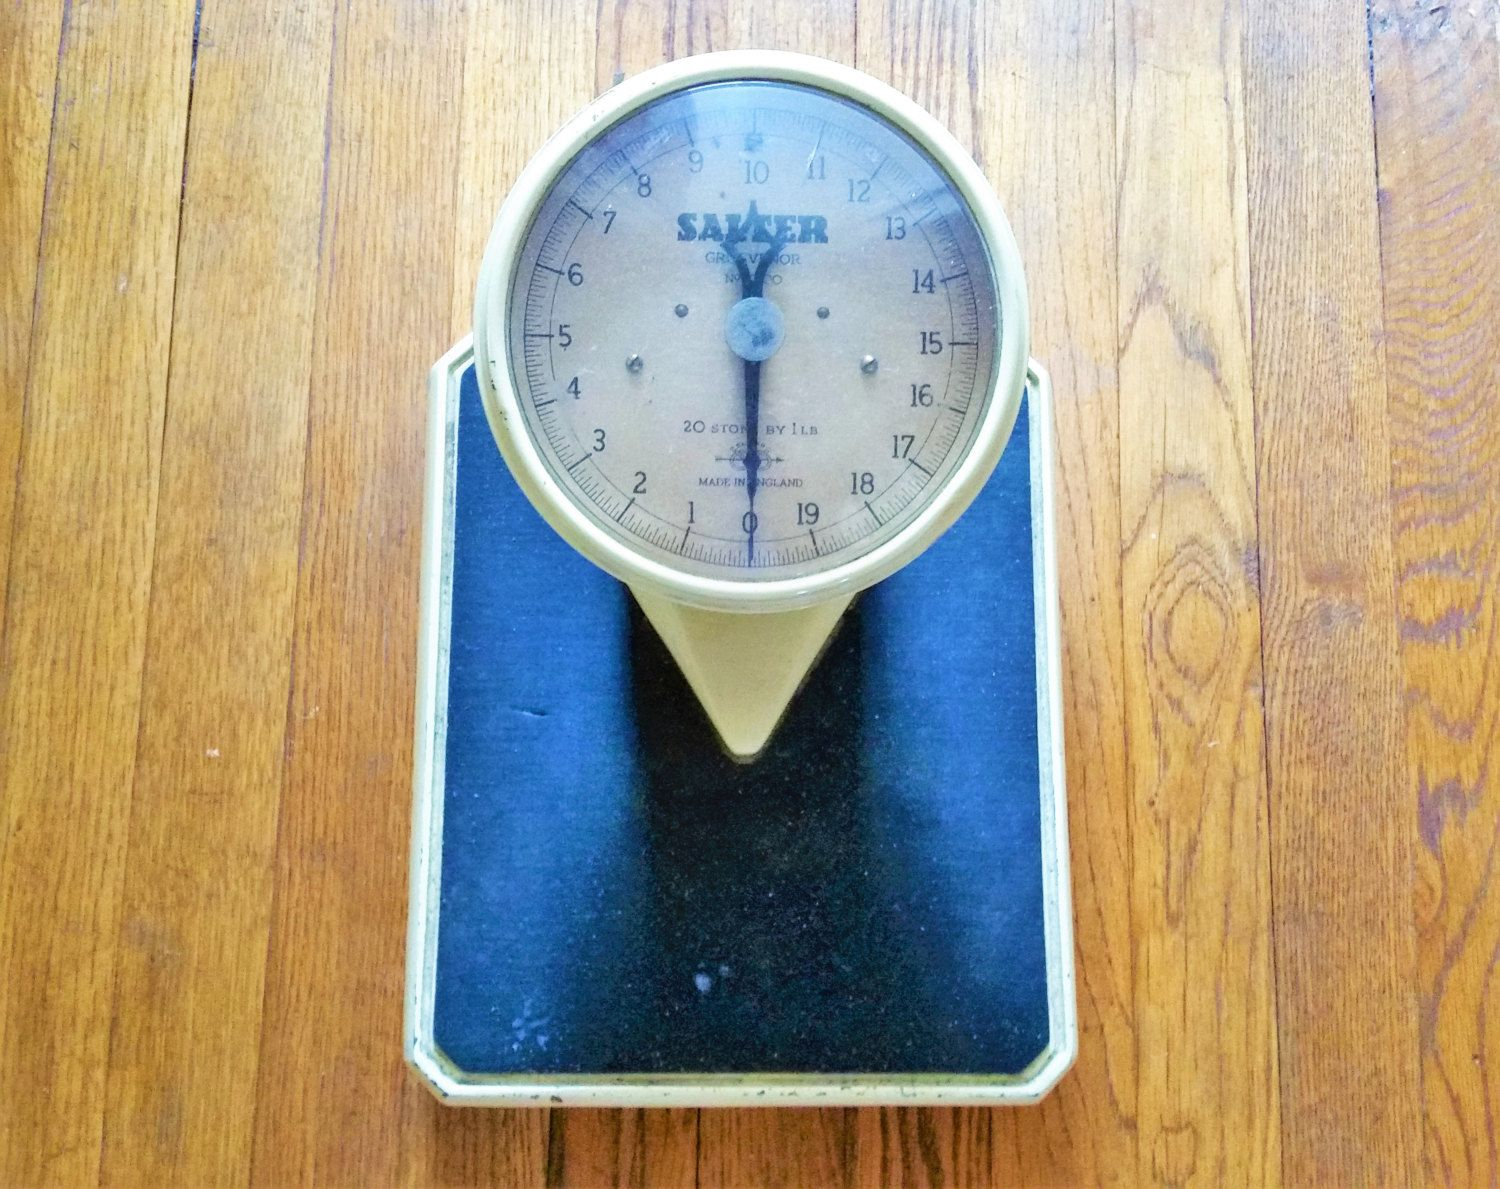 Vintage Salter Bathroom Scales 1950s Medical Scales Cast Iron Weighing Scales Vintage Scale Vintage Sell On Etsy